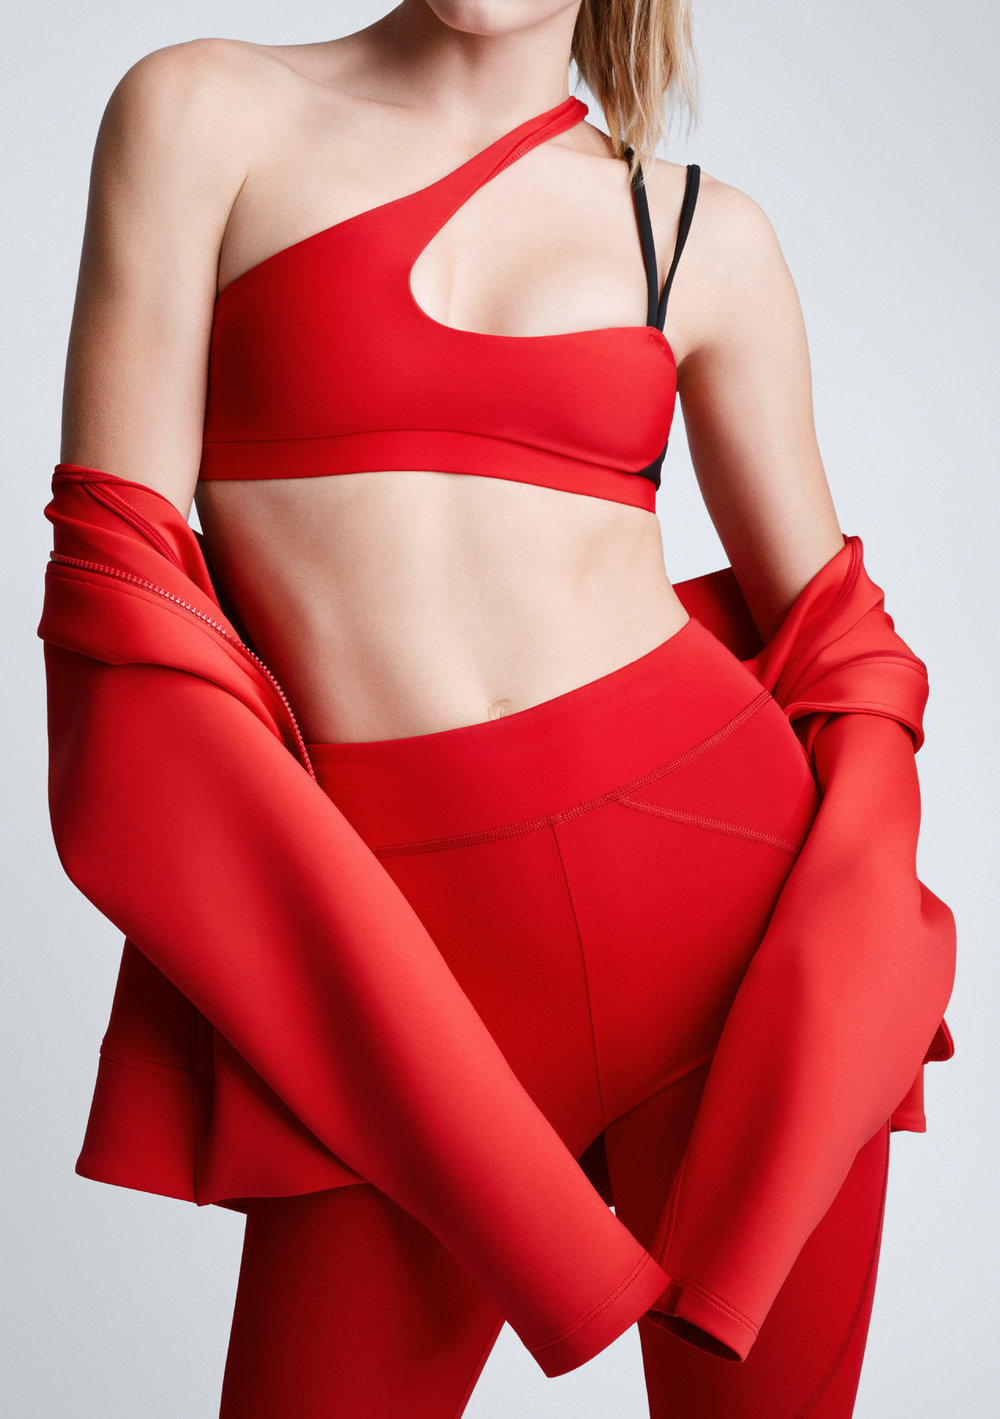 Cushnie et Ochs PreFall 2018 Activewear Lookbook copy-ilovepdf-compressed-4.jpg